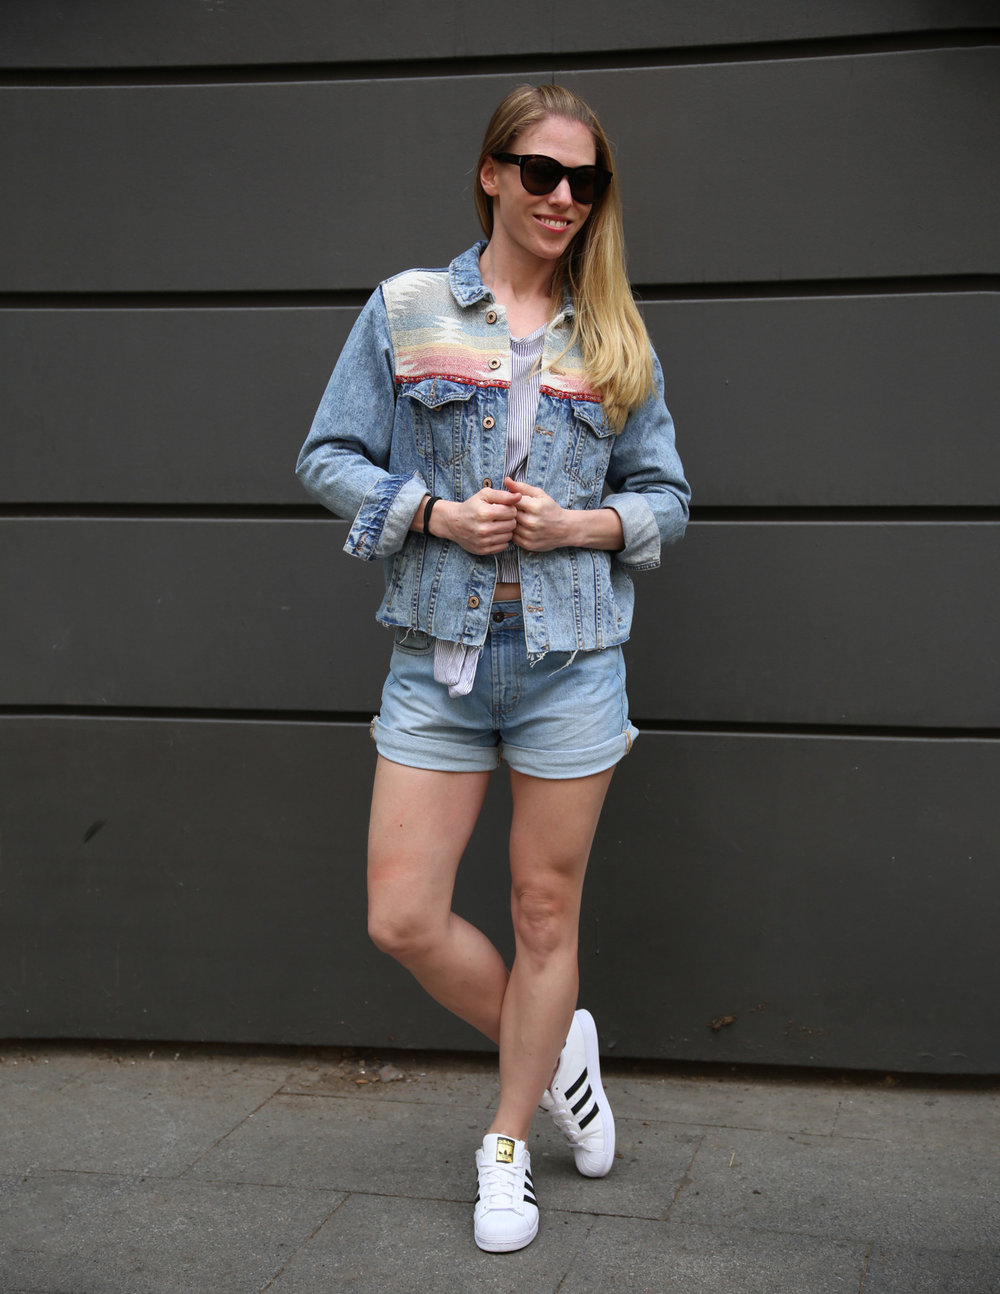 Shirt - Pull&Bear. Shorts - Pull&Bear. Shoes - Adidas. Shades - Yves Saint Laurent